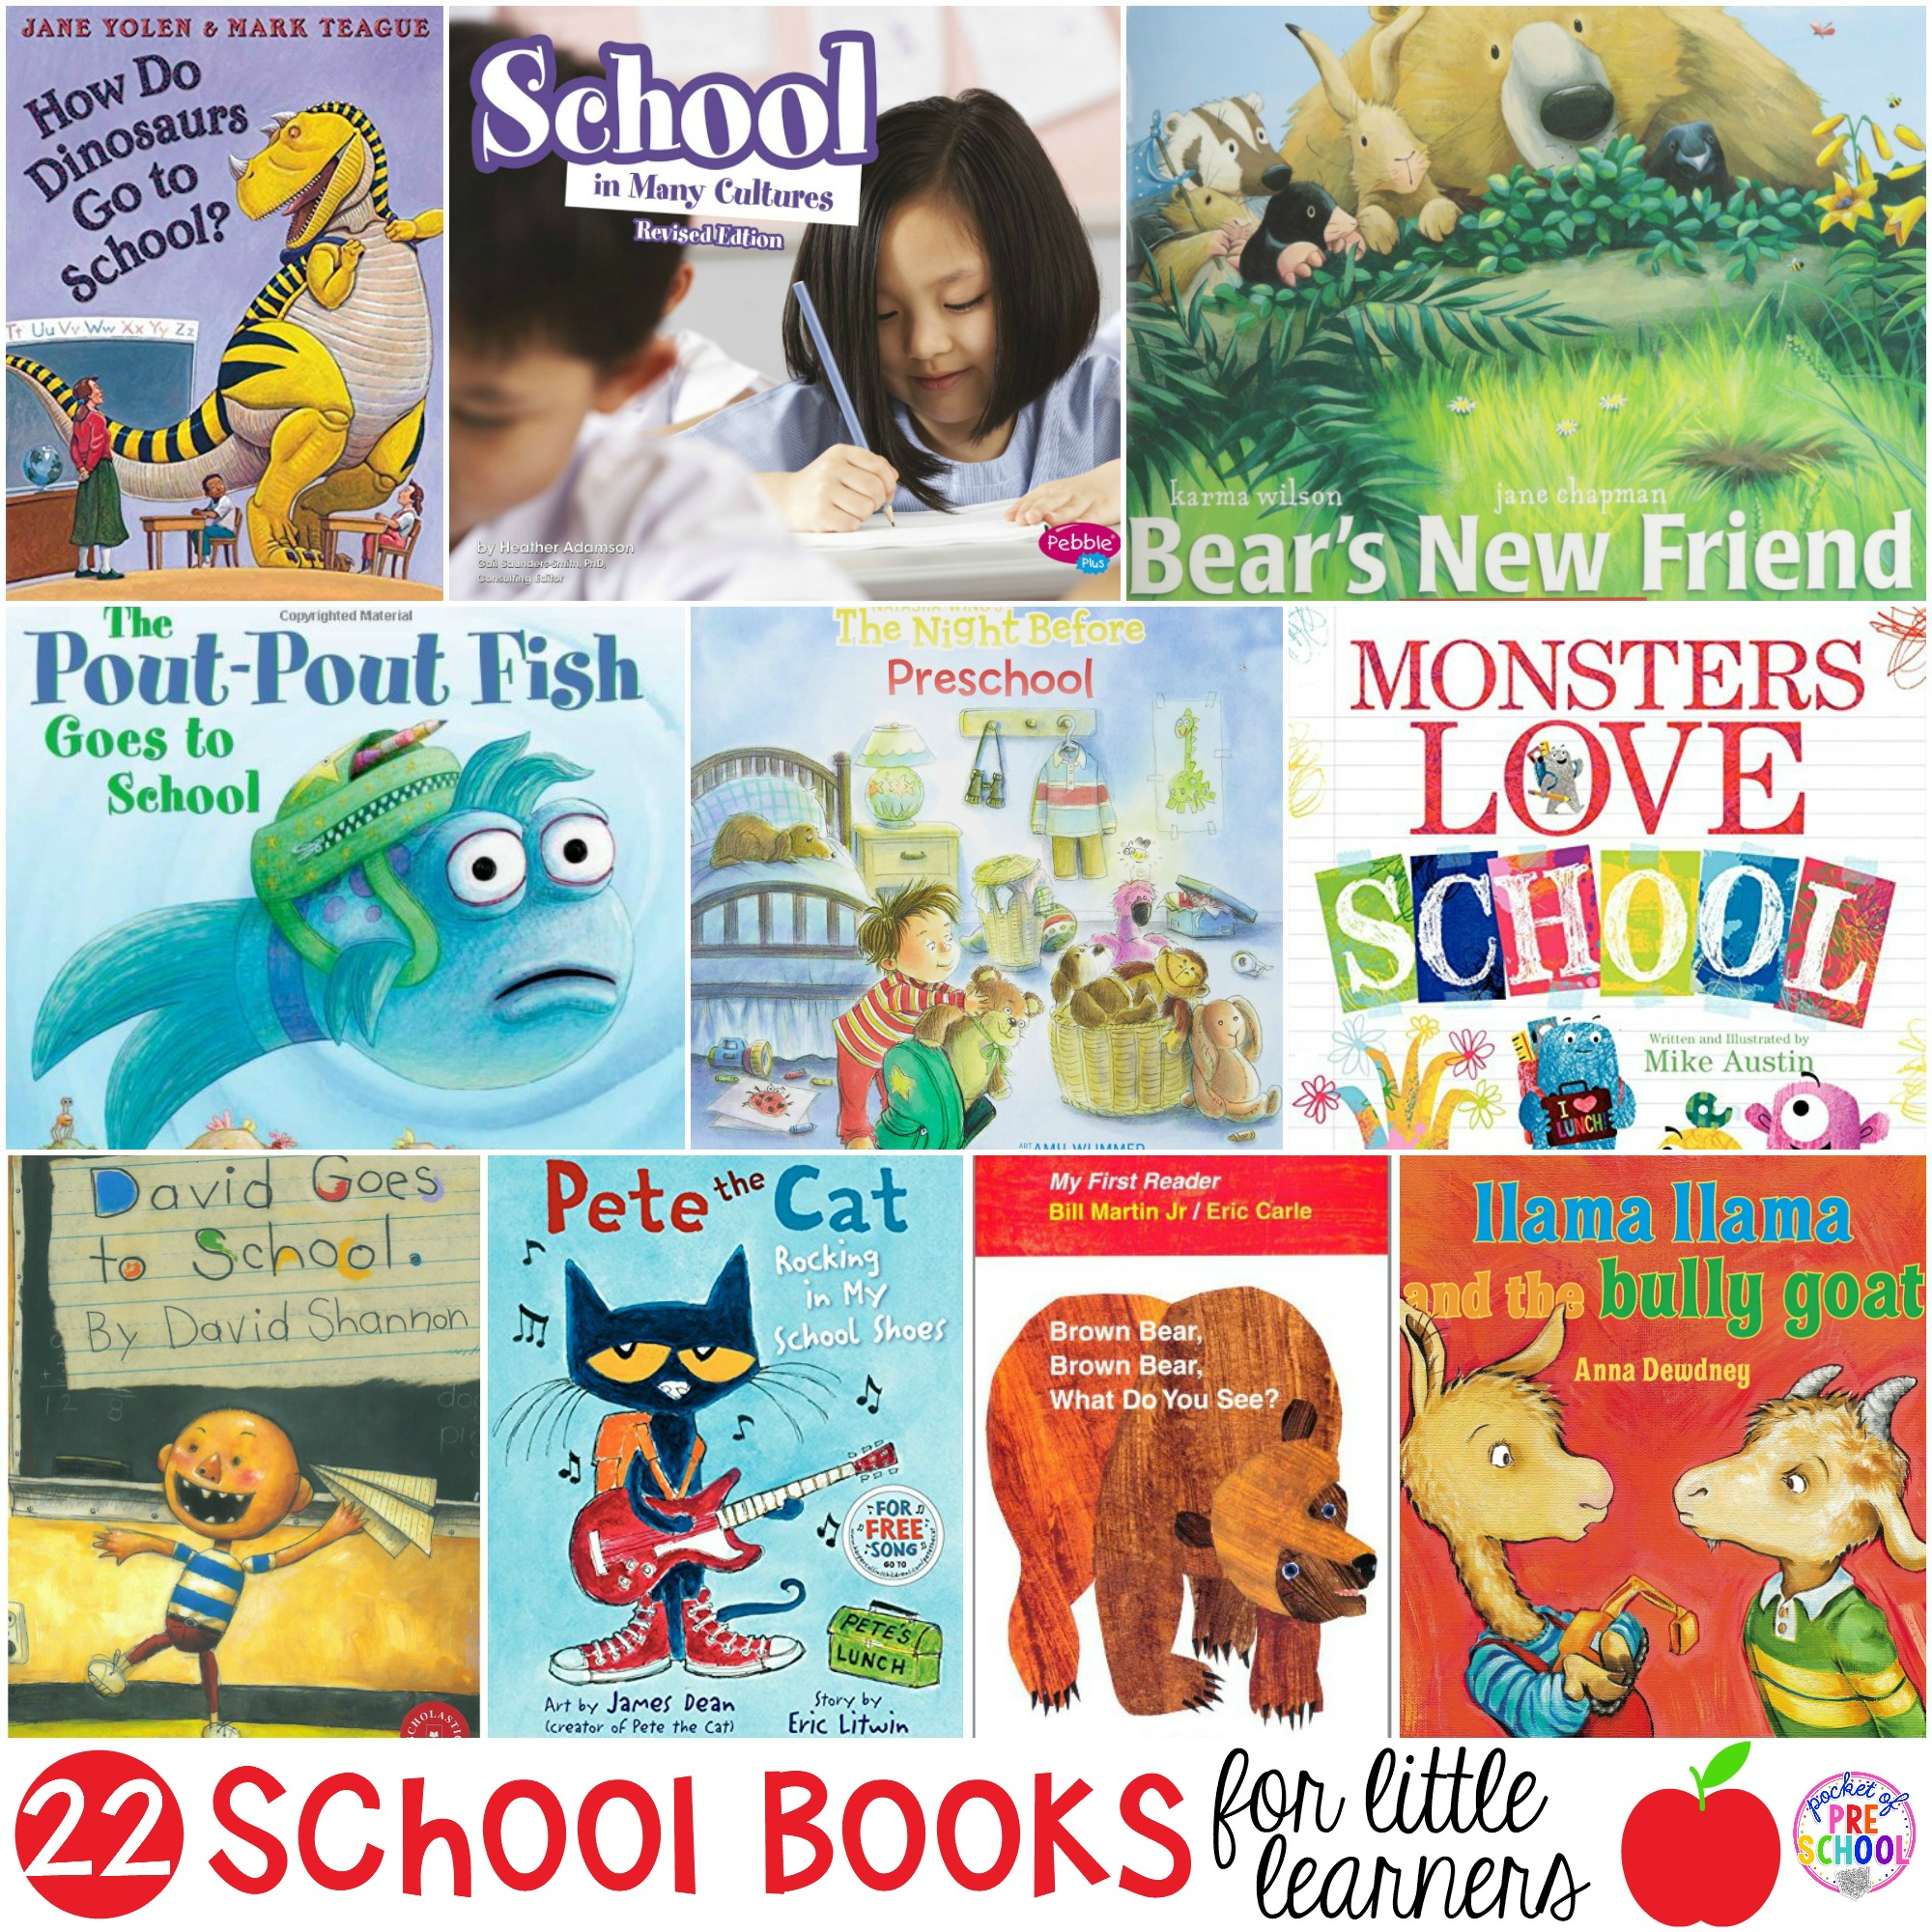 The ultimate school book list your preschool, pre-k, and kindergarten kiddos will love listening to at circle during back to school. #preschool #prek #schoolbooks #booklist